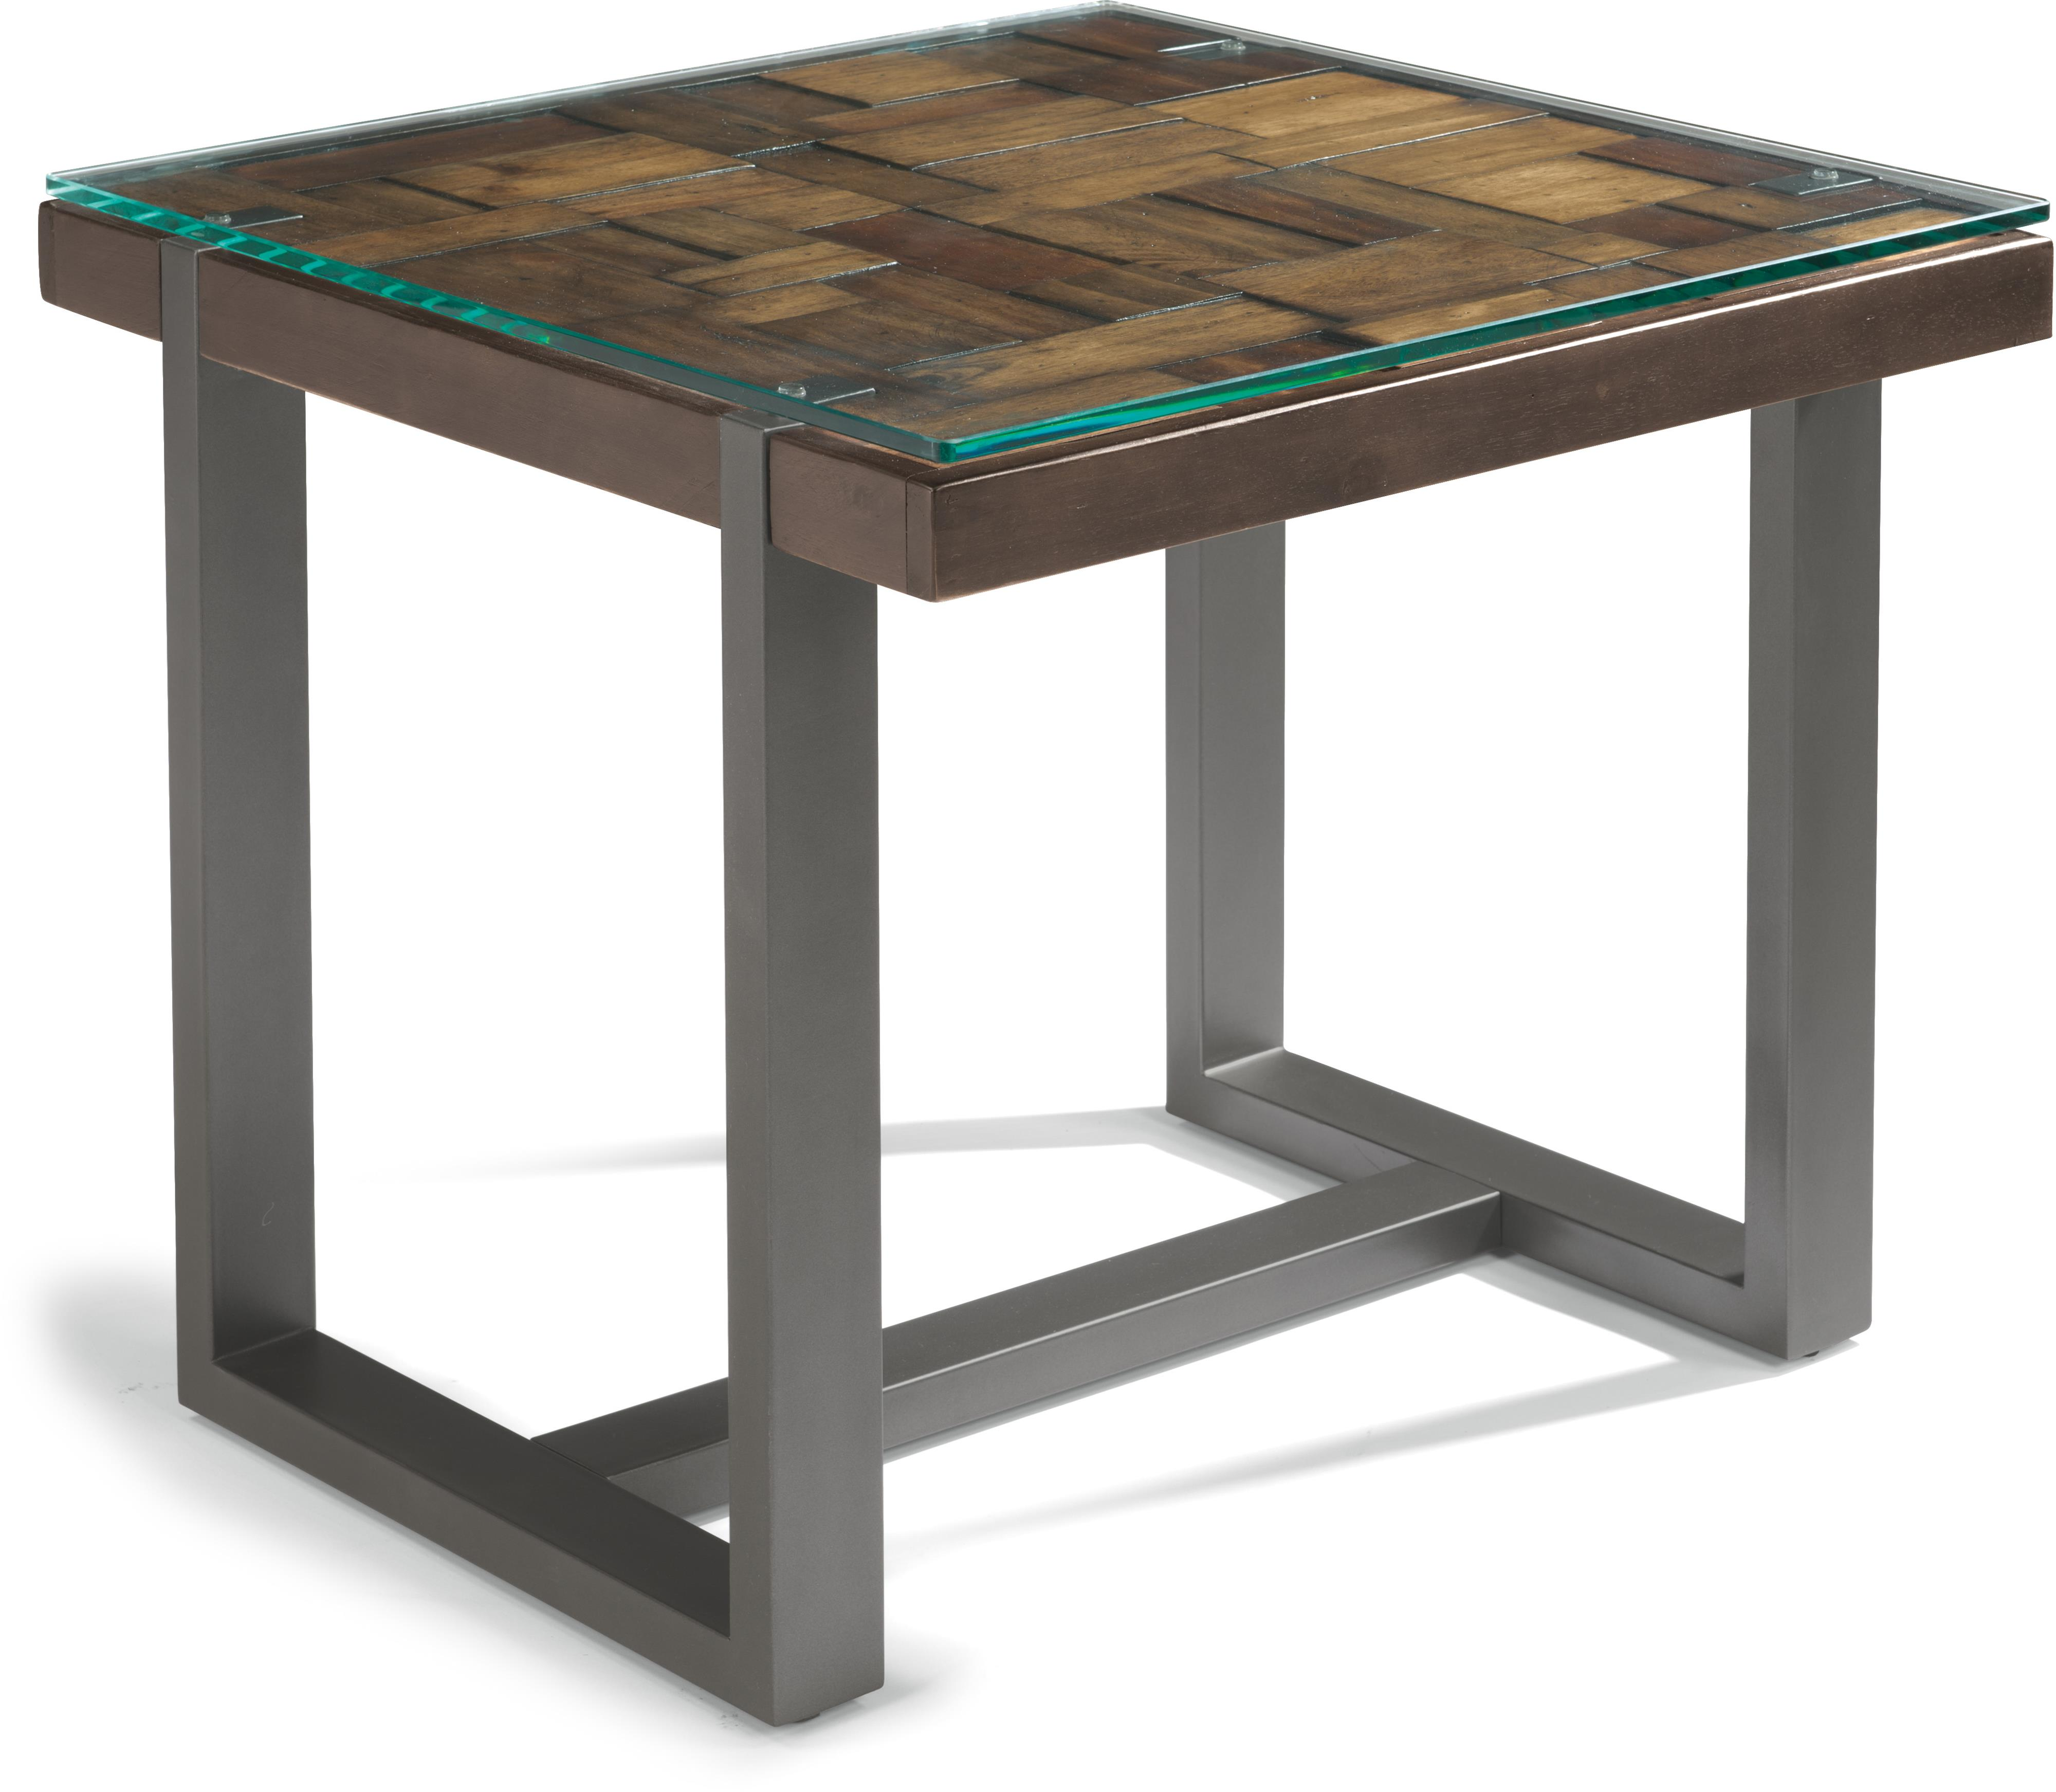 Flexsteel Patchwork Lamp Table  - Item Number: W1415-02